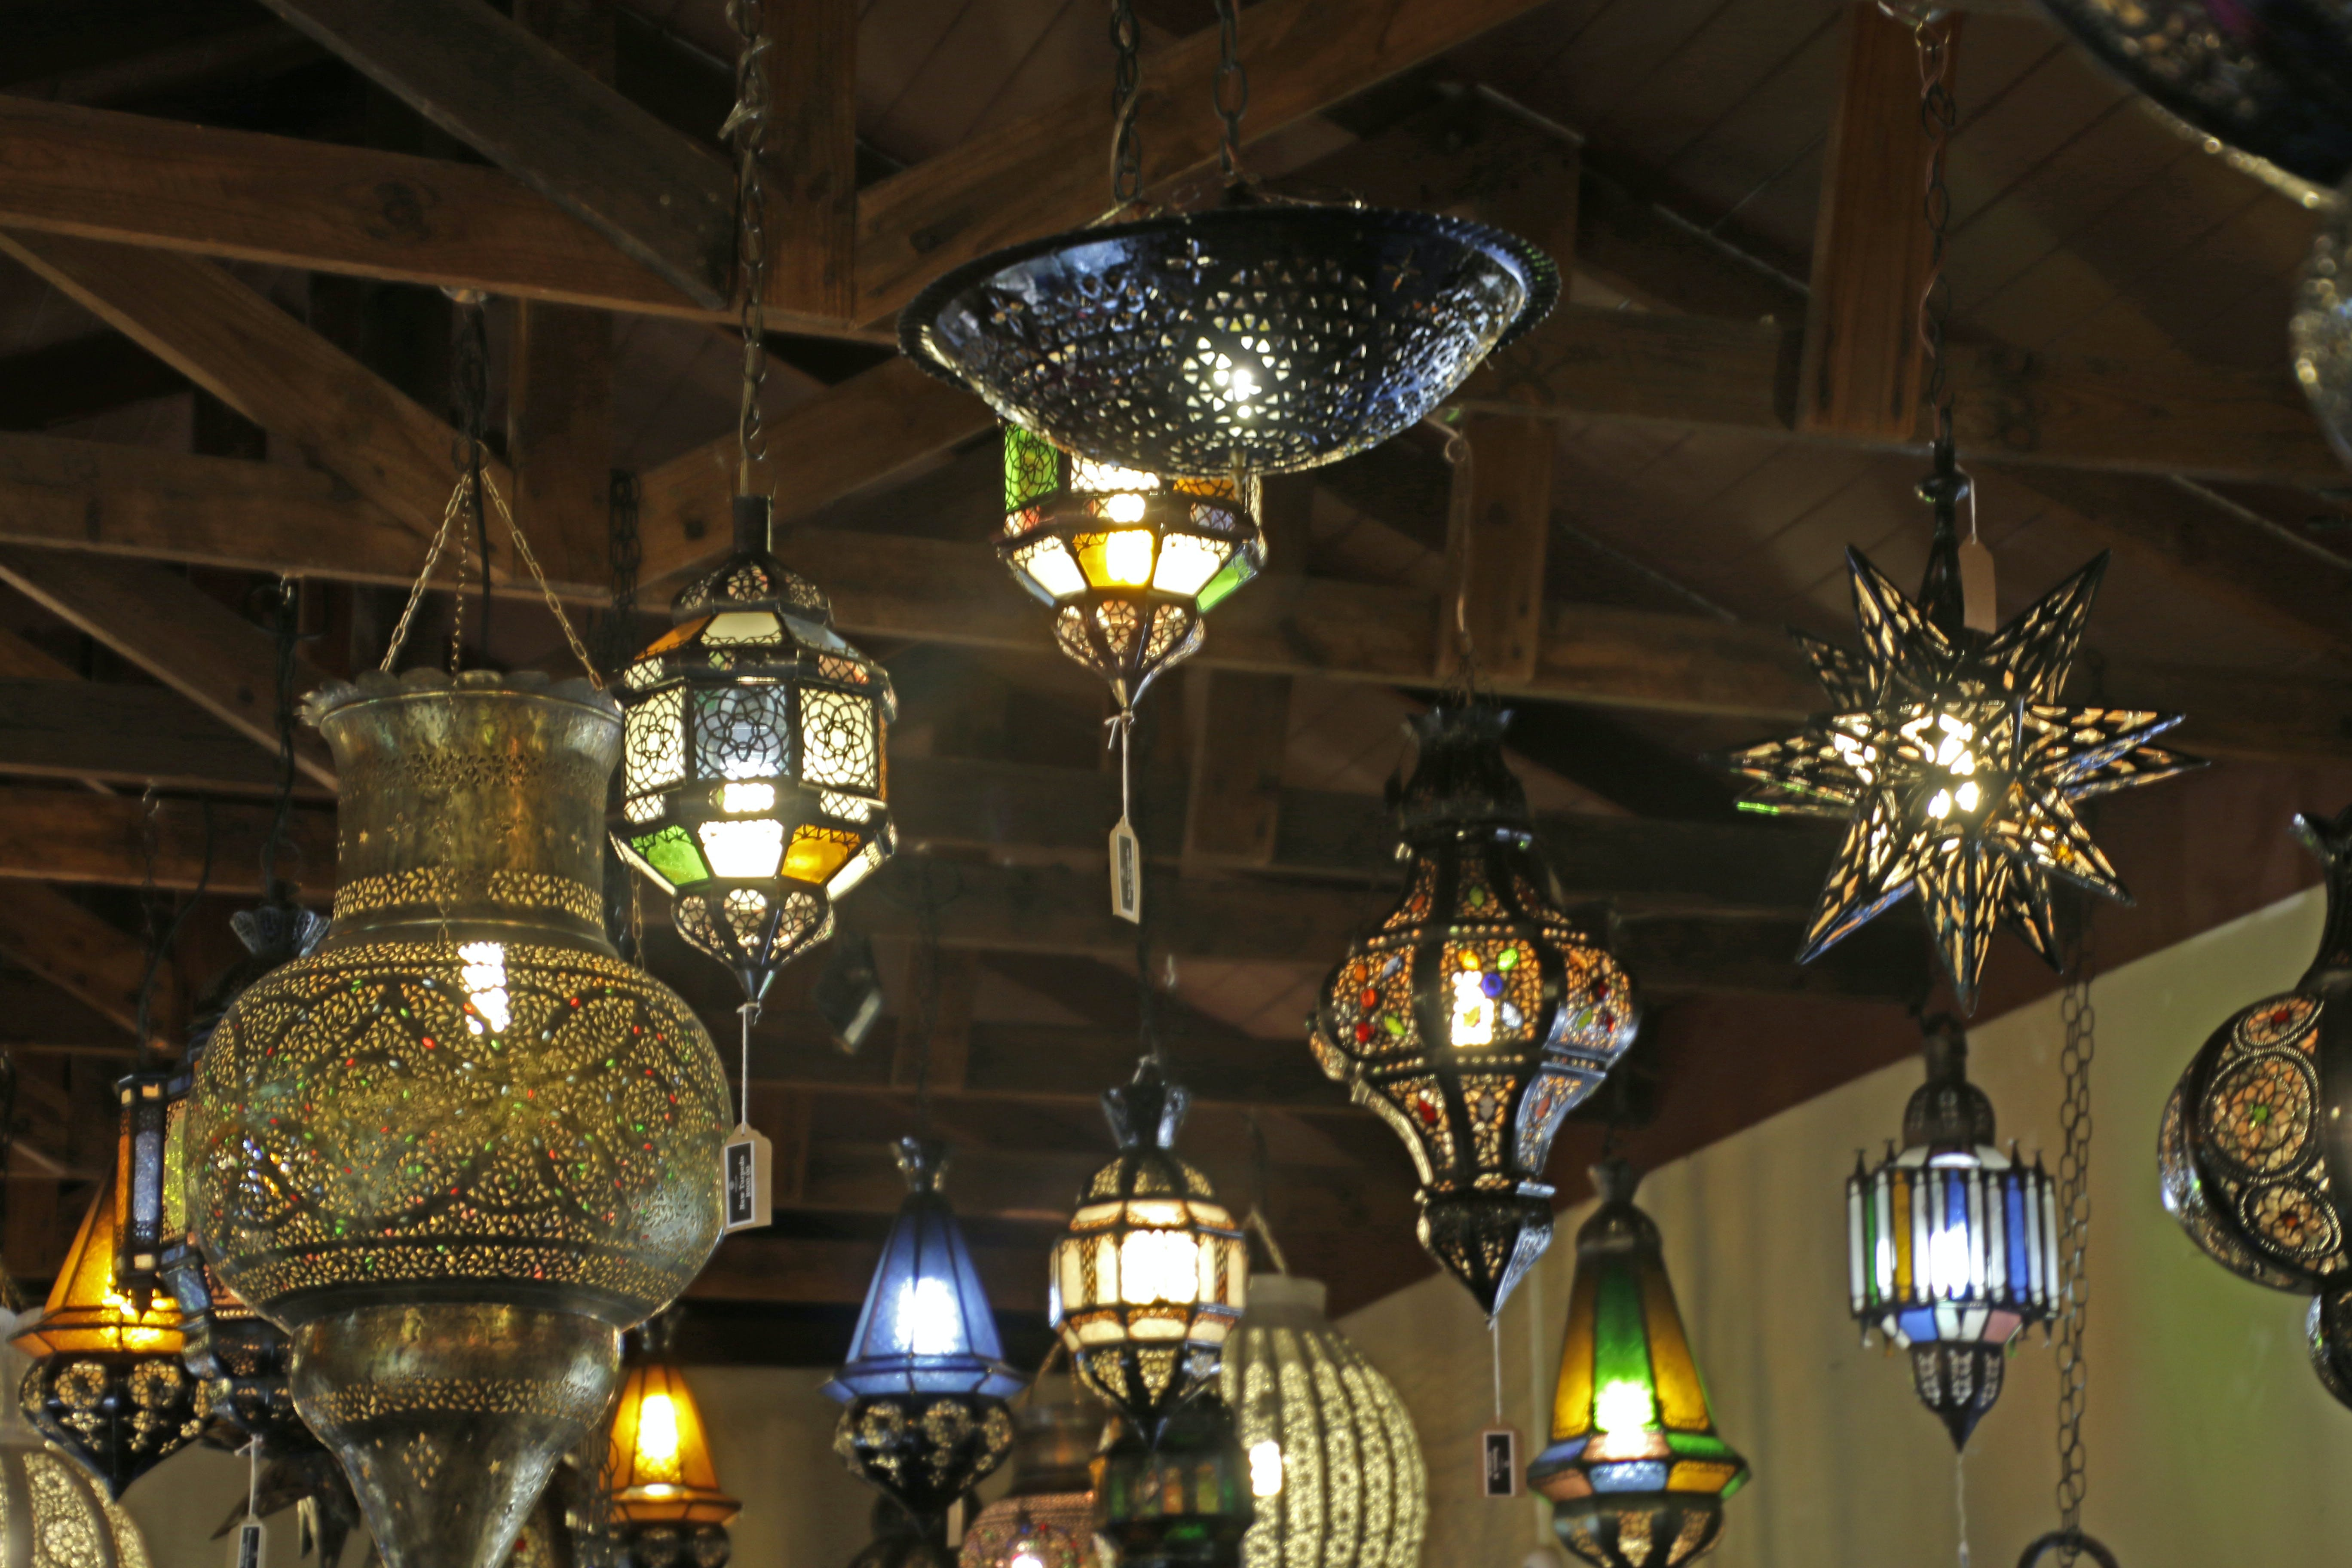 Free stock photo of lights, lanterns, african, chandeliers